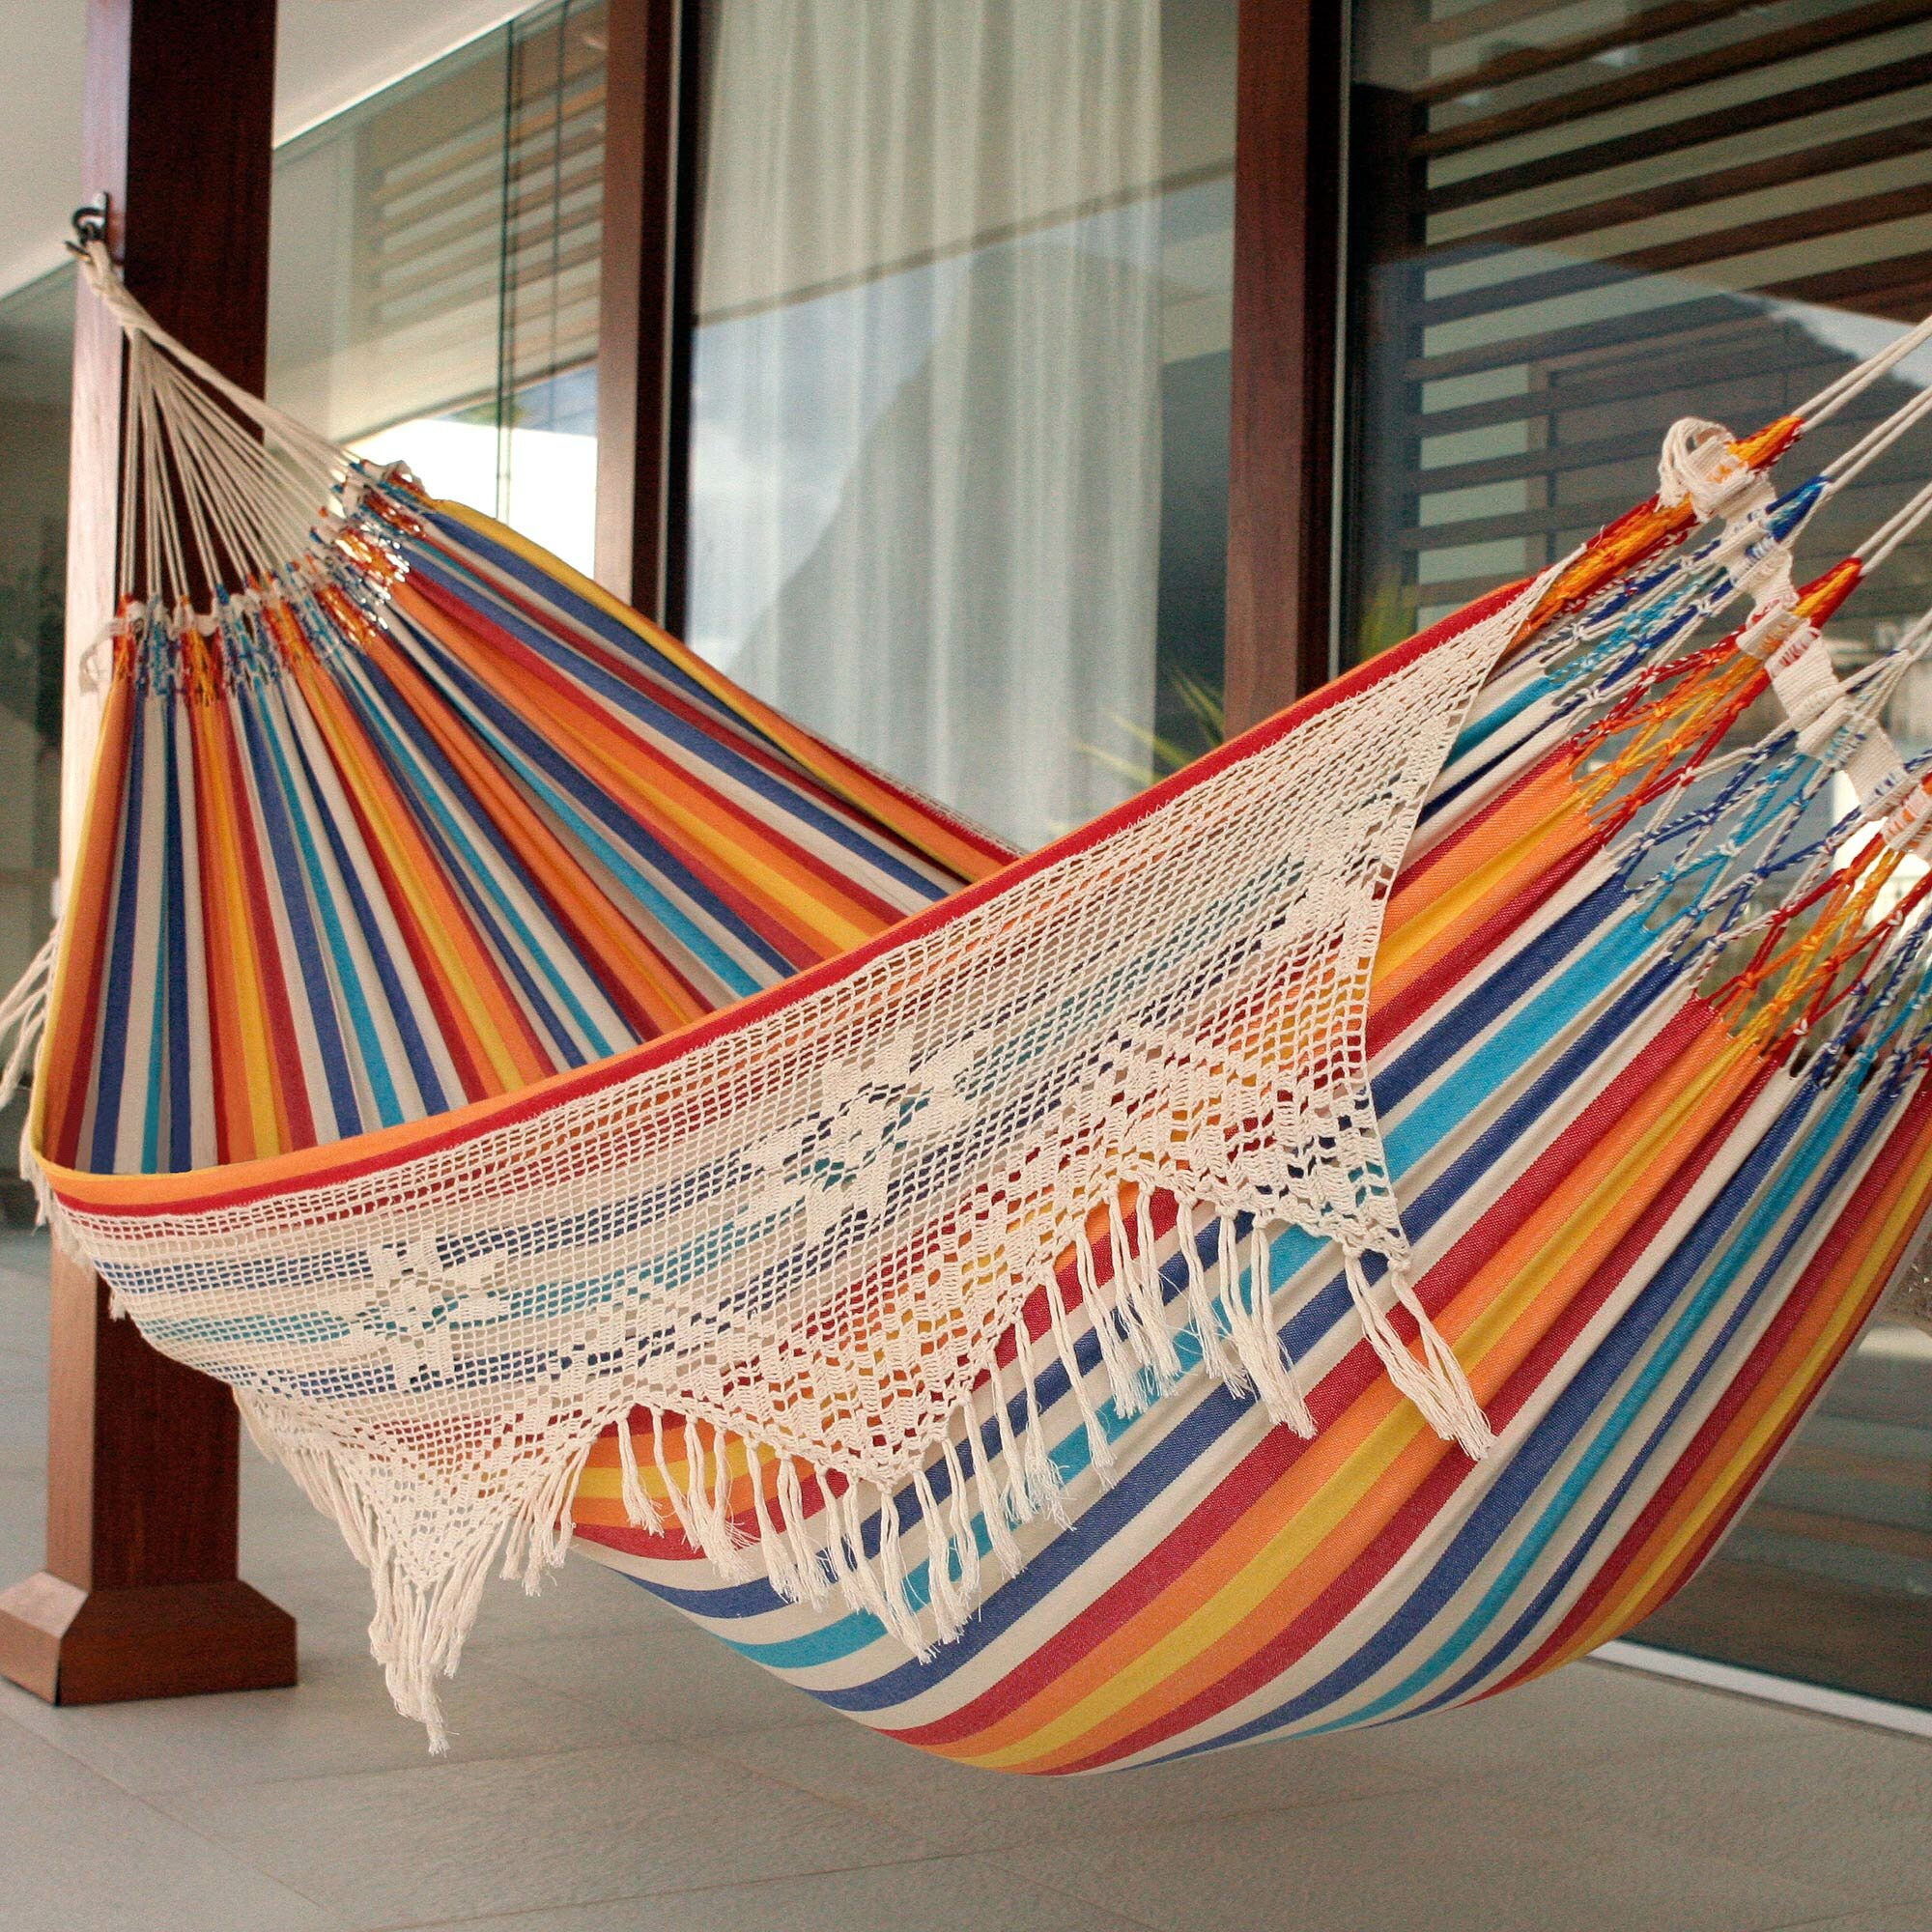 novica double person fair trade portable festive striped hand woven brazilian cotton with crocheted florid draping indoor and outdoor hammock  u0026 reviews       novica double person fair trade portable festive striped hand      rh   wayfair